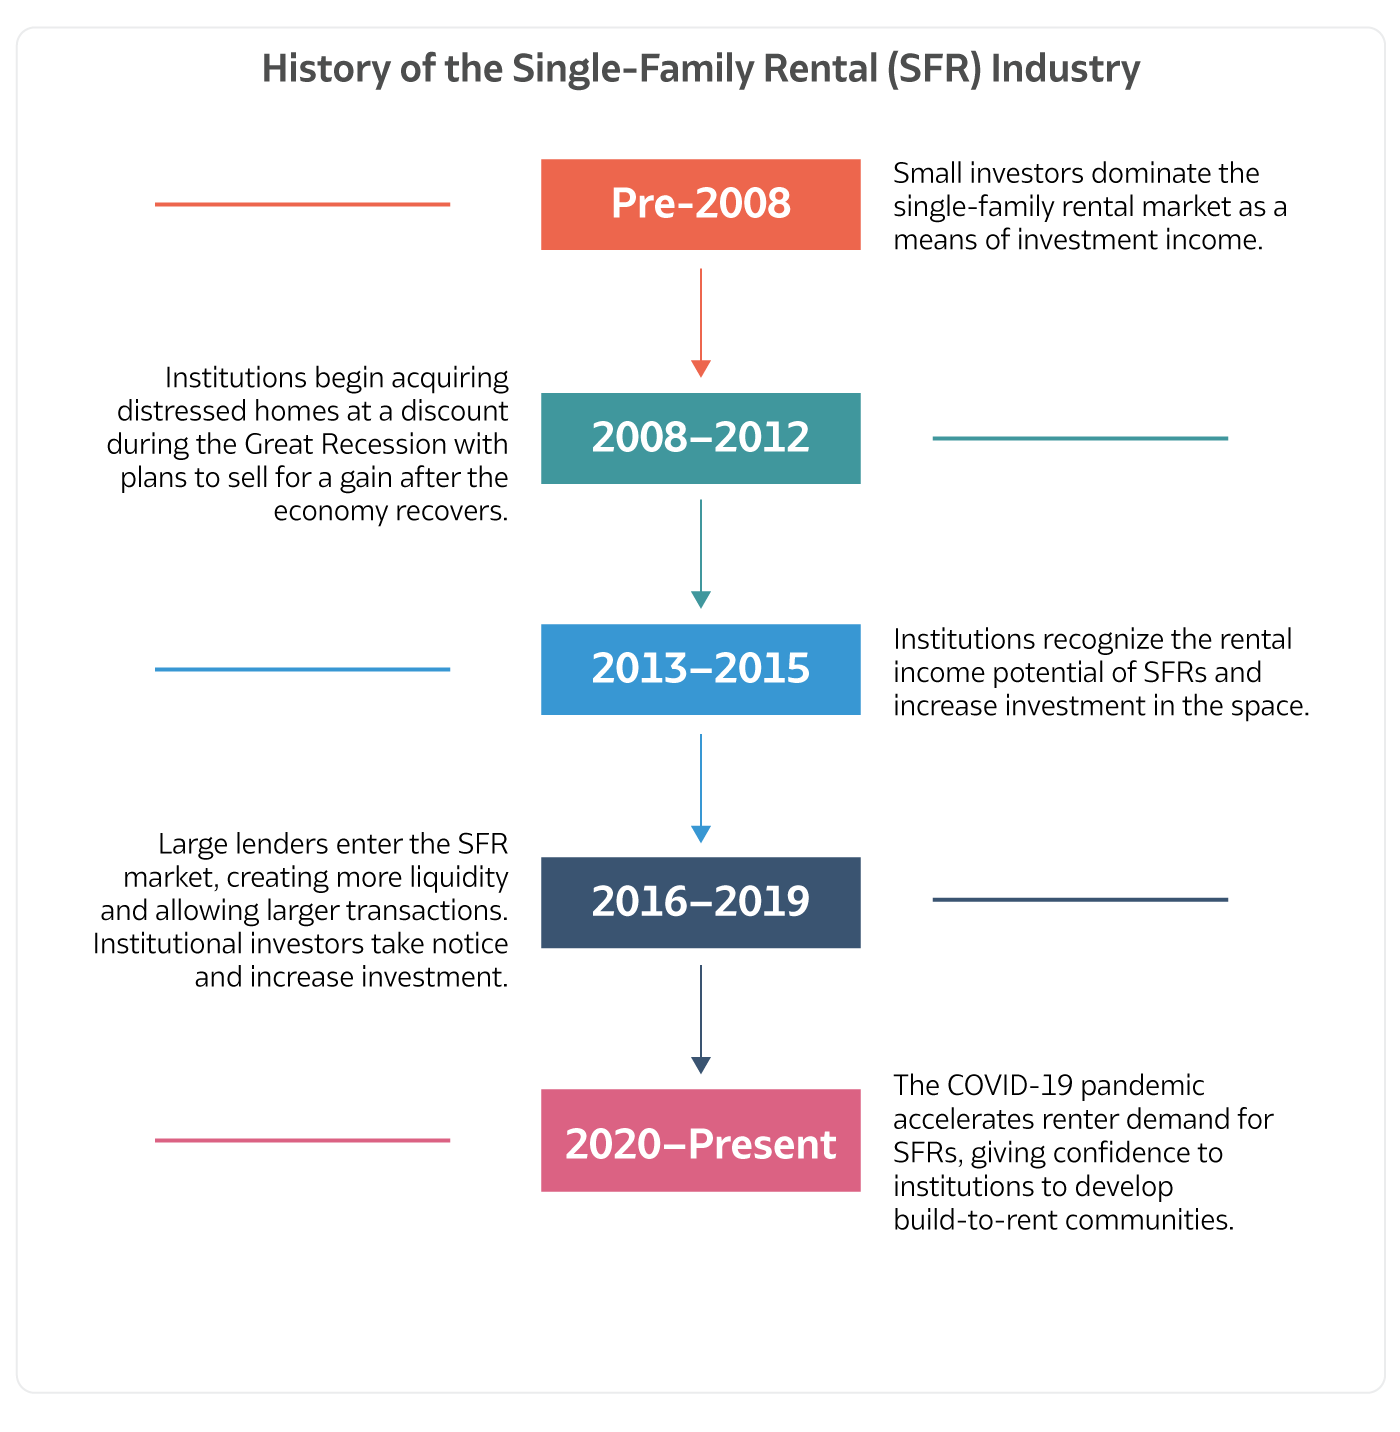 Timeline of the History of Single-Family Rentals (SFR) and Build-to-Rent (BTR) Real Estate